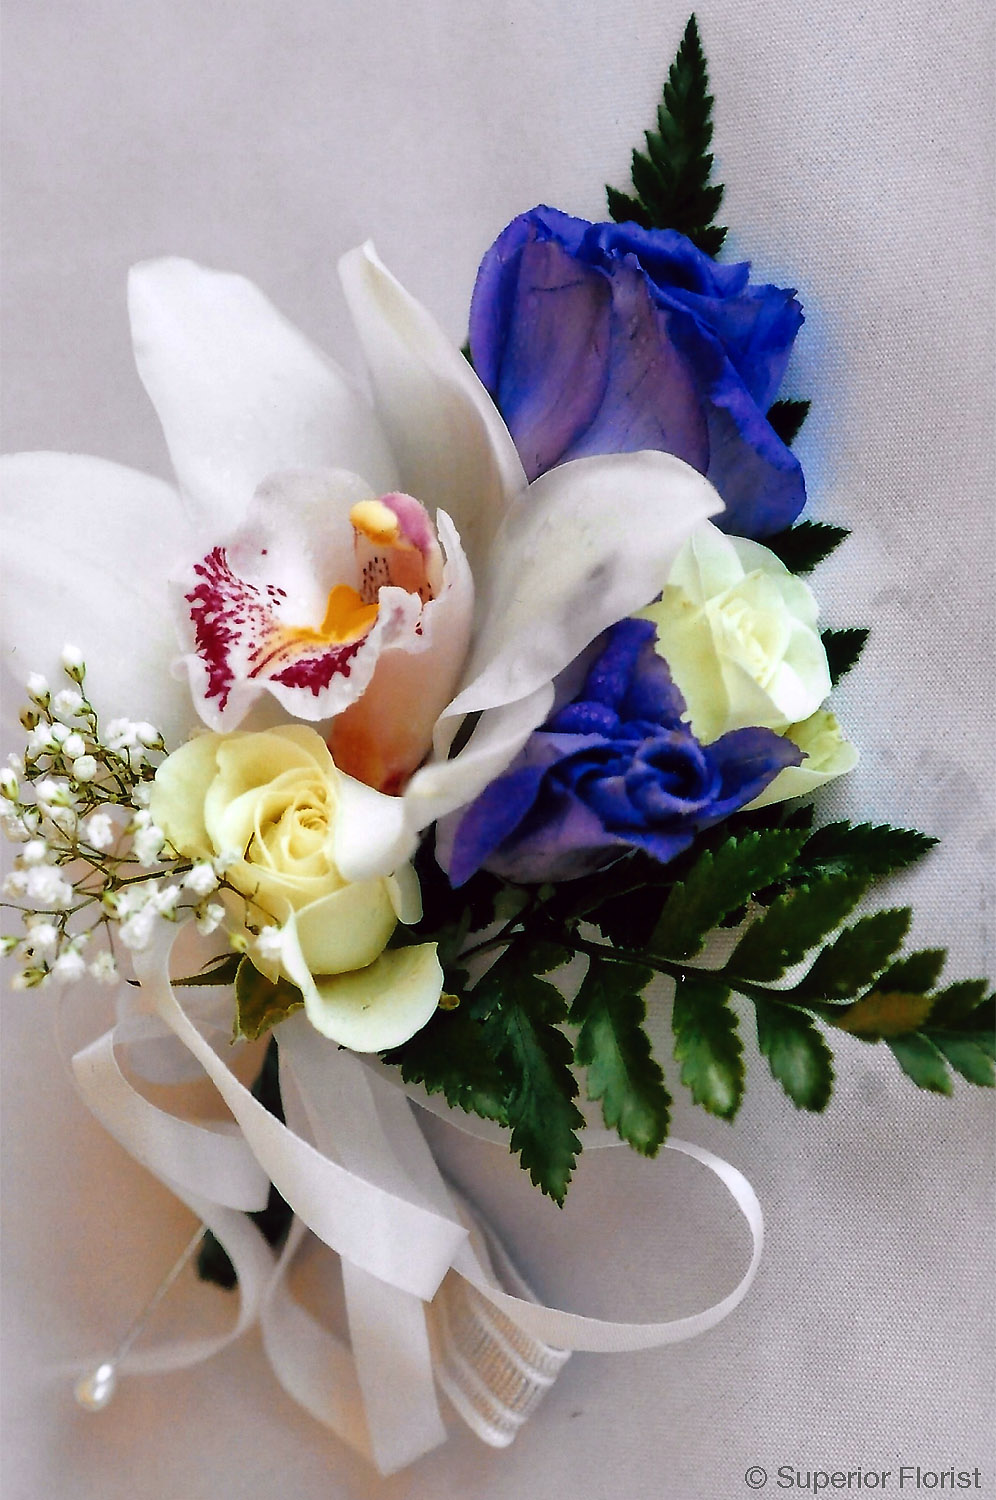 Superior Florist – Weddings – Personal Flowers: Corsage of a Cymbidium orchid, Lisianthus, two ivory roses, baby's-breath and greens.